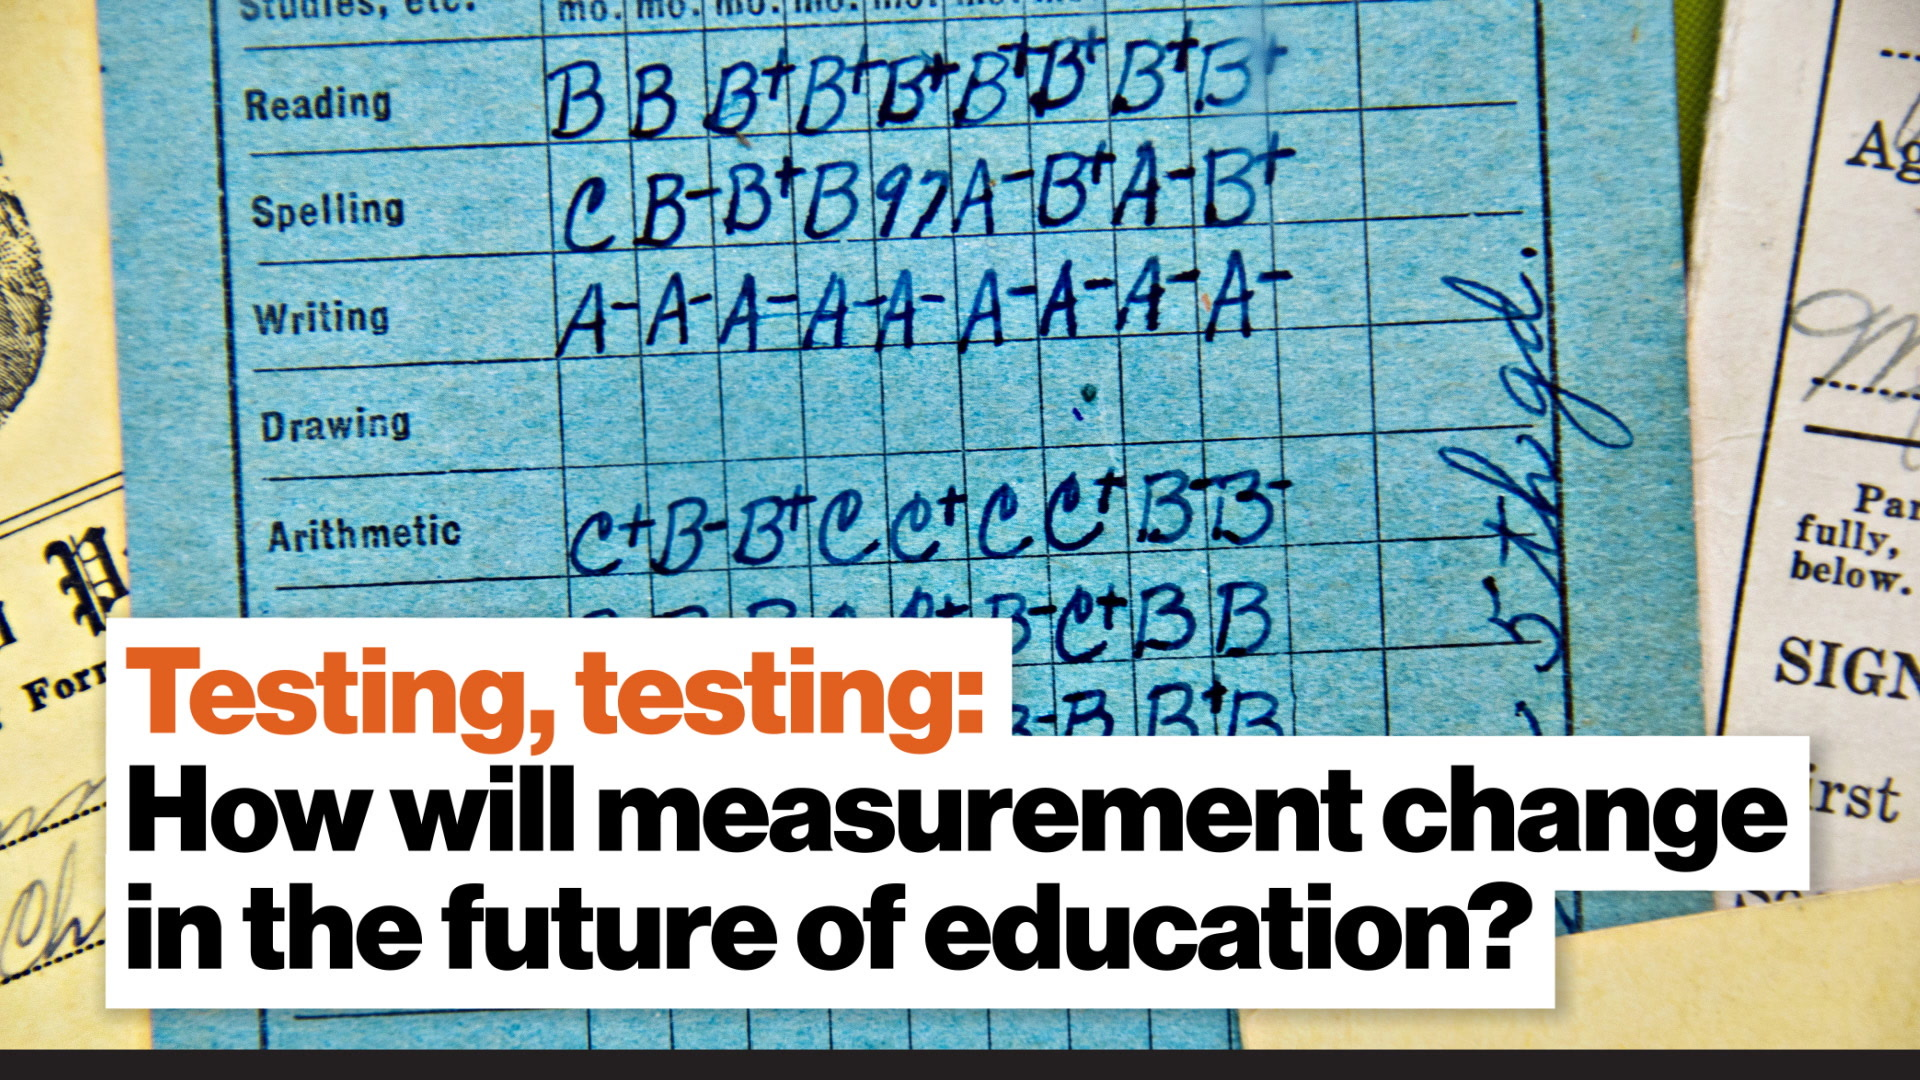 Testing, testing: How will measurement change in the future of education?